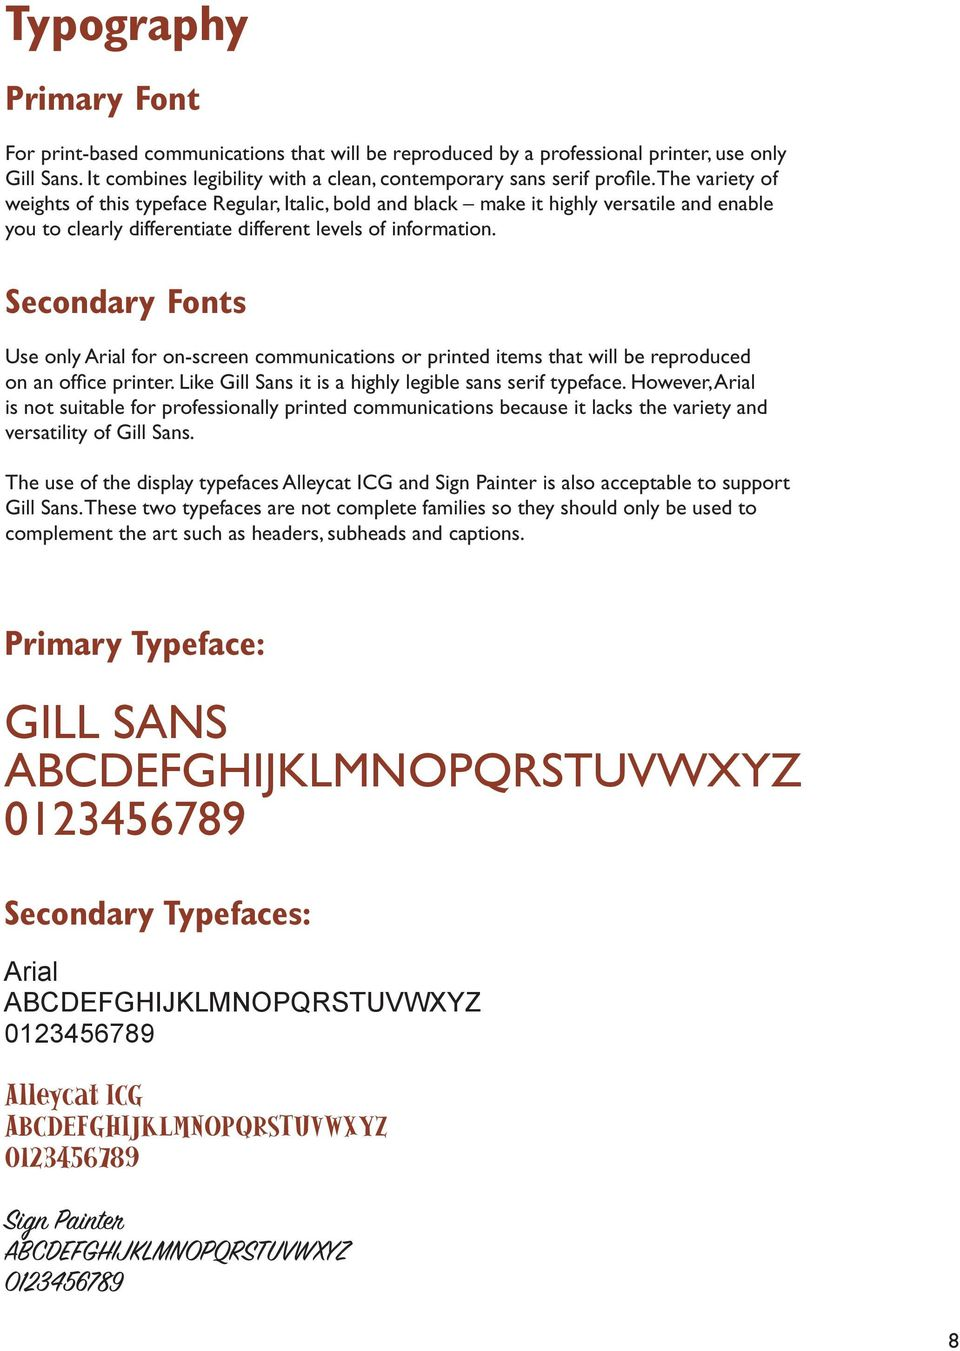 Secondary Fonts Use only Arial for on-screen communications or printed items that will be reproduced on an office printer. Like Gill Sans it is a highly legible sans serif typeface.